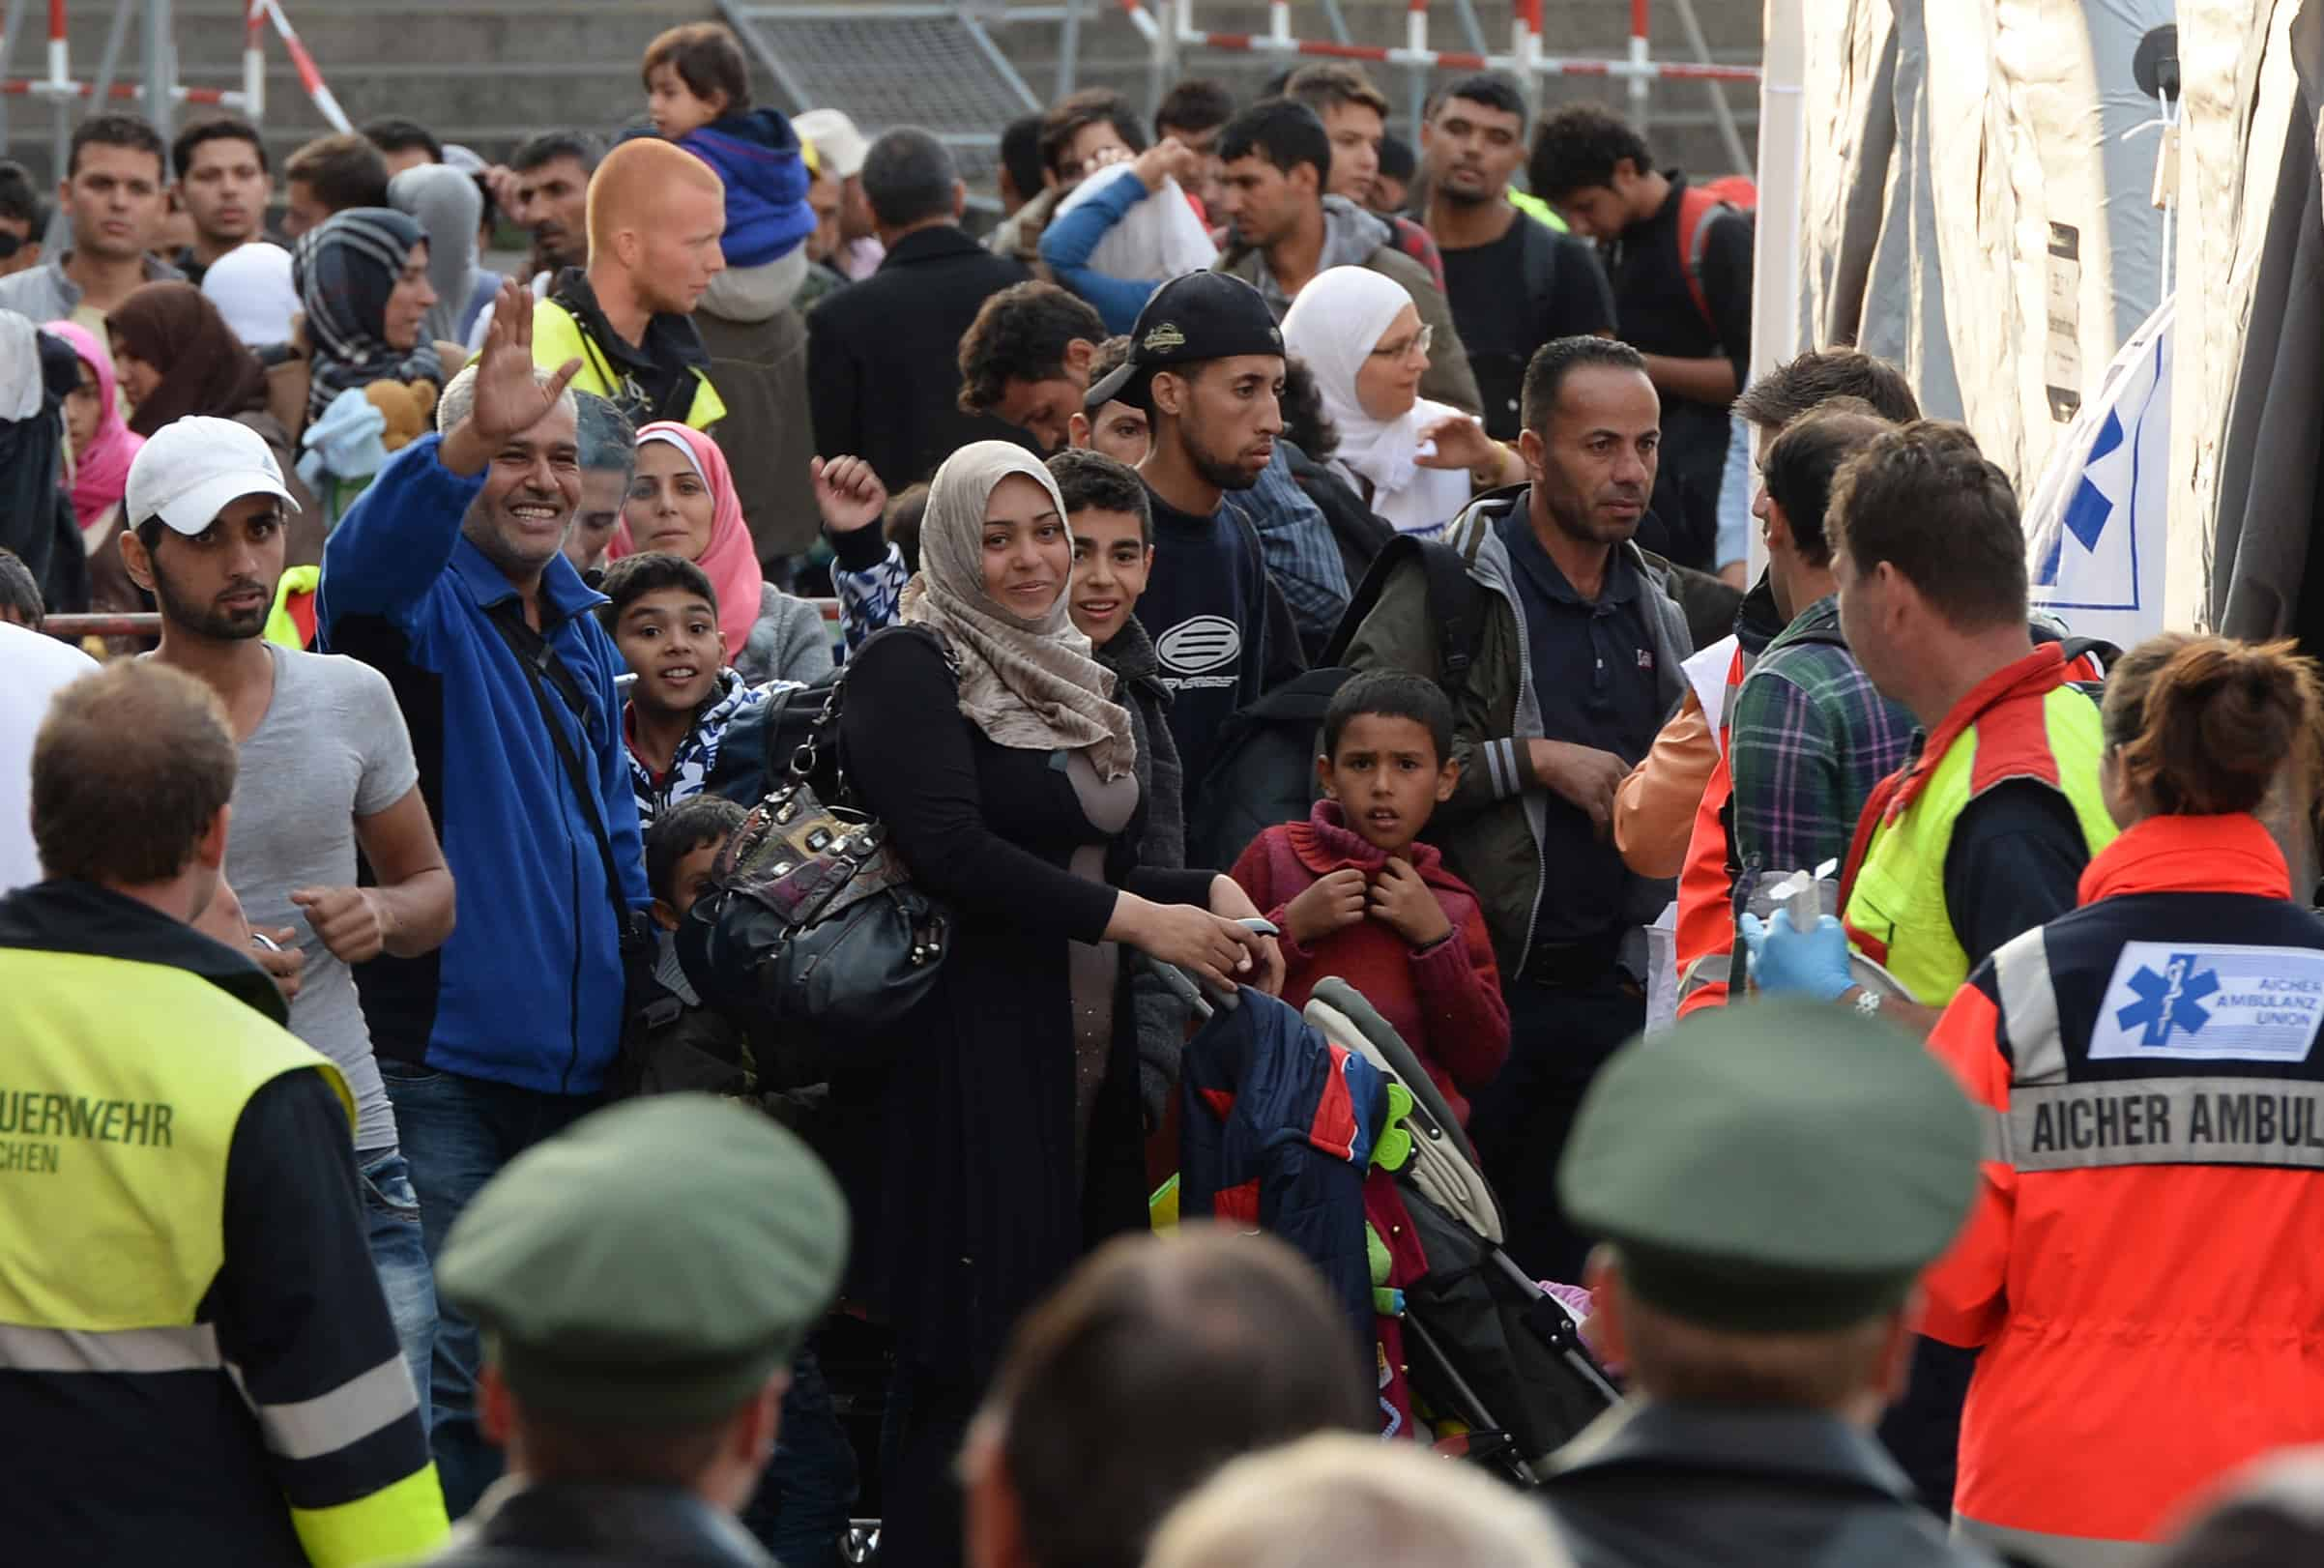 Incoming refugees wait for a short first medical check after their arrival in front of the main train station in Munich, southern Germany, Sept. 5, 2015.